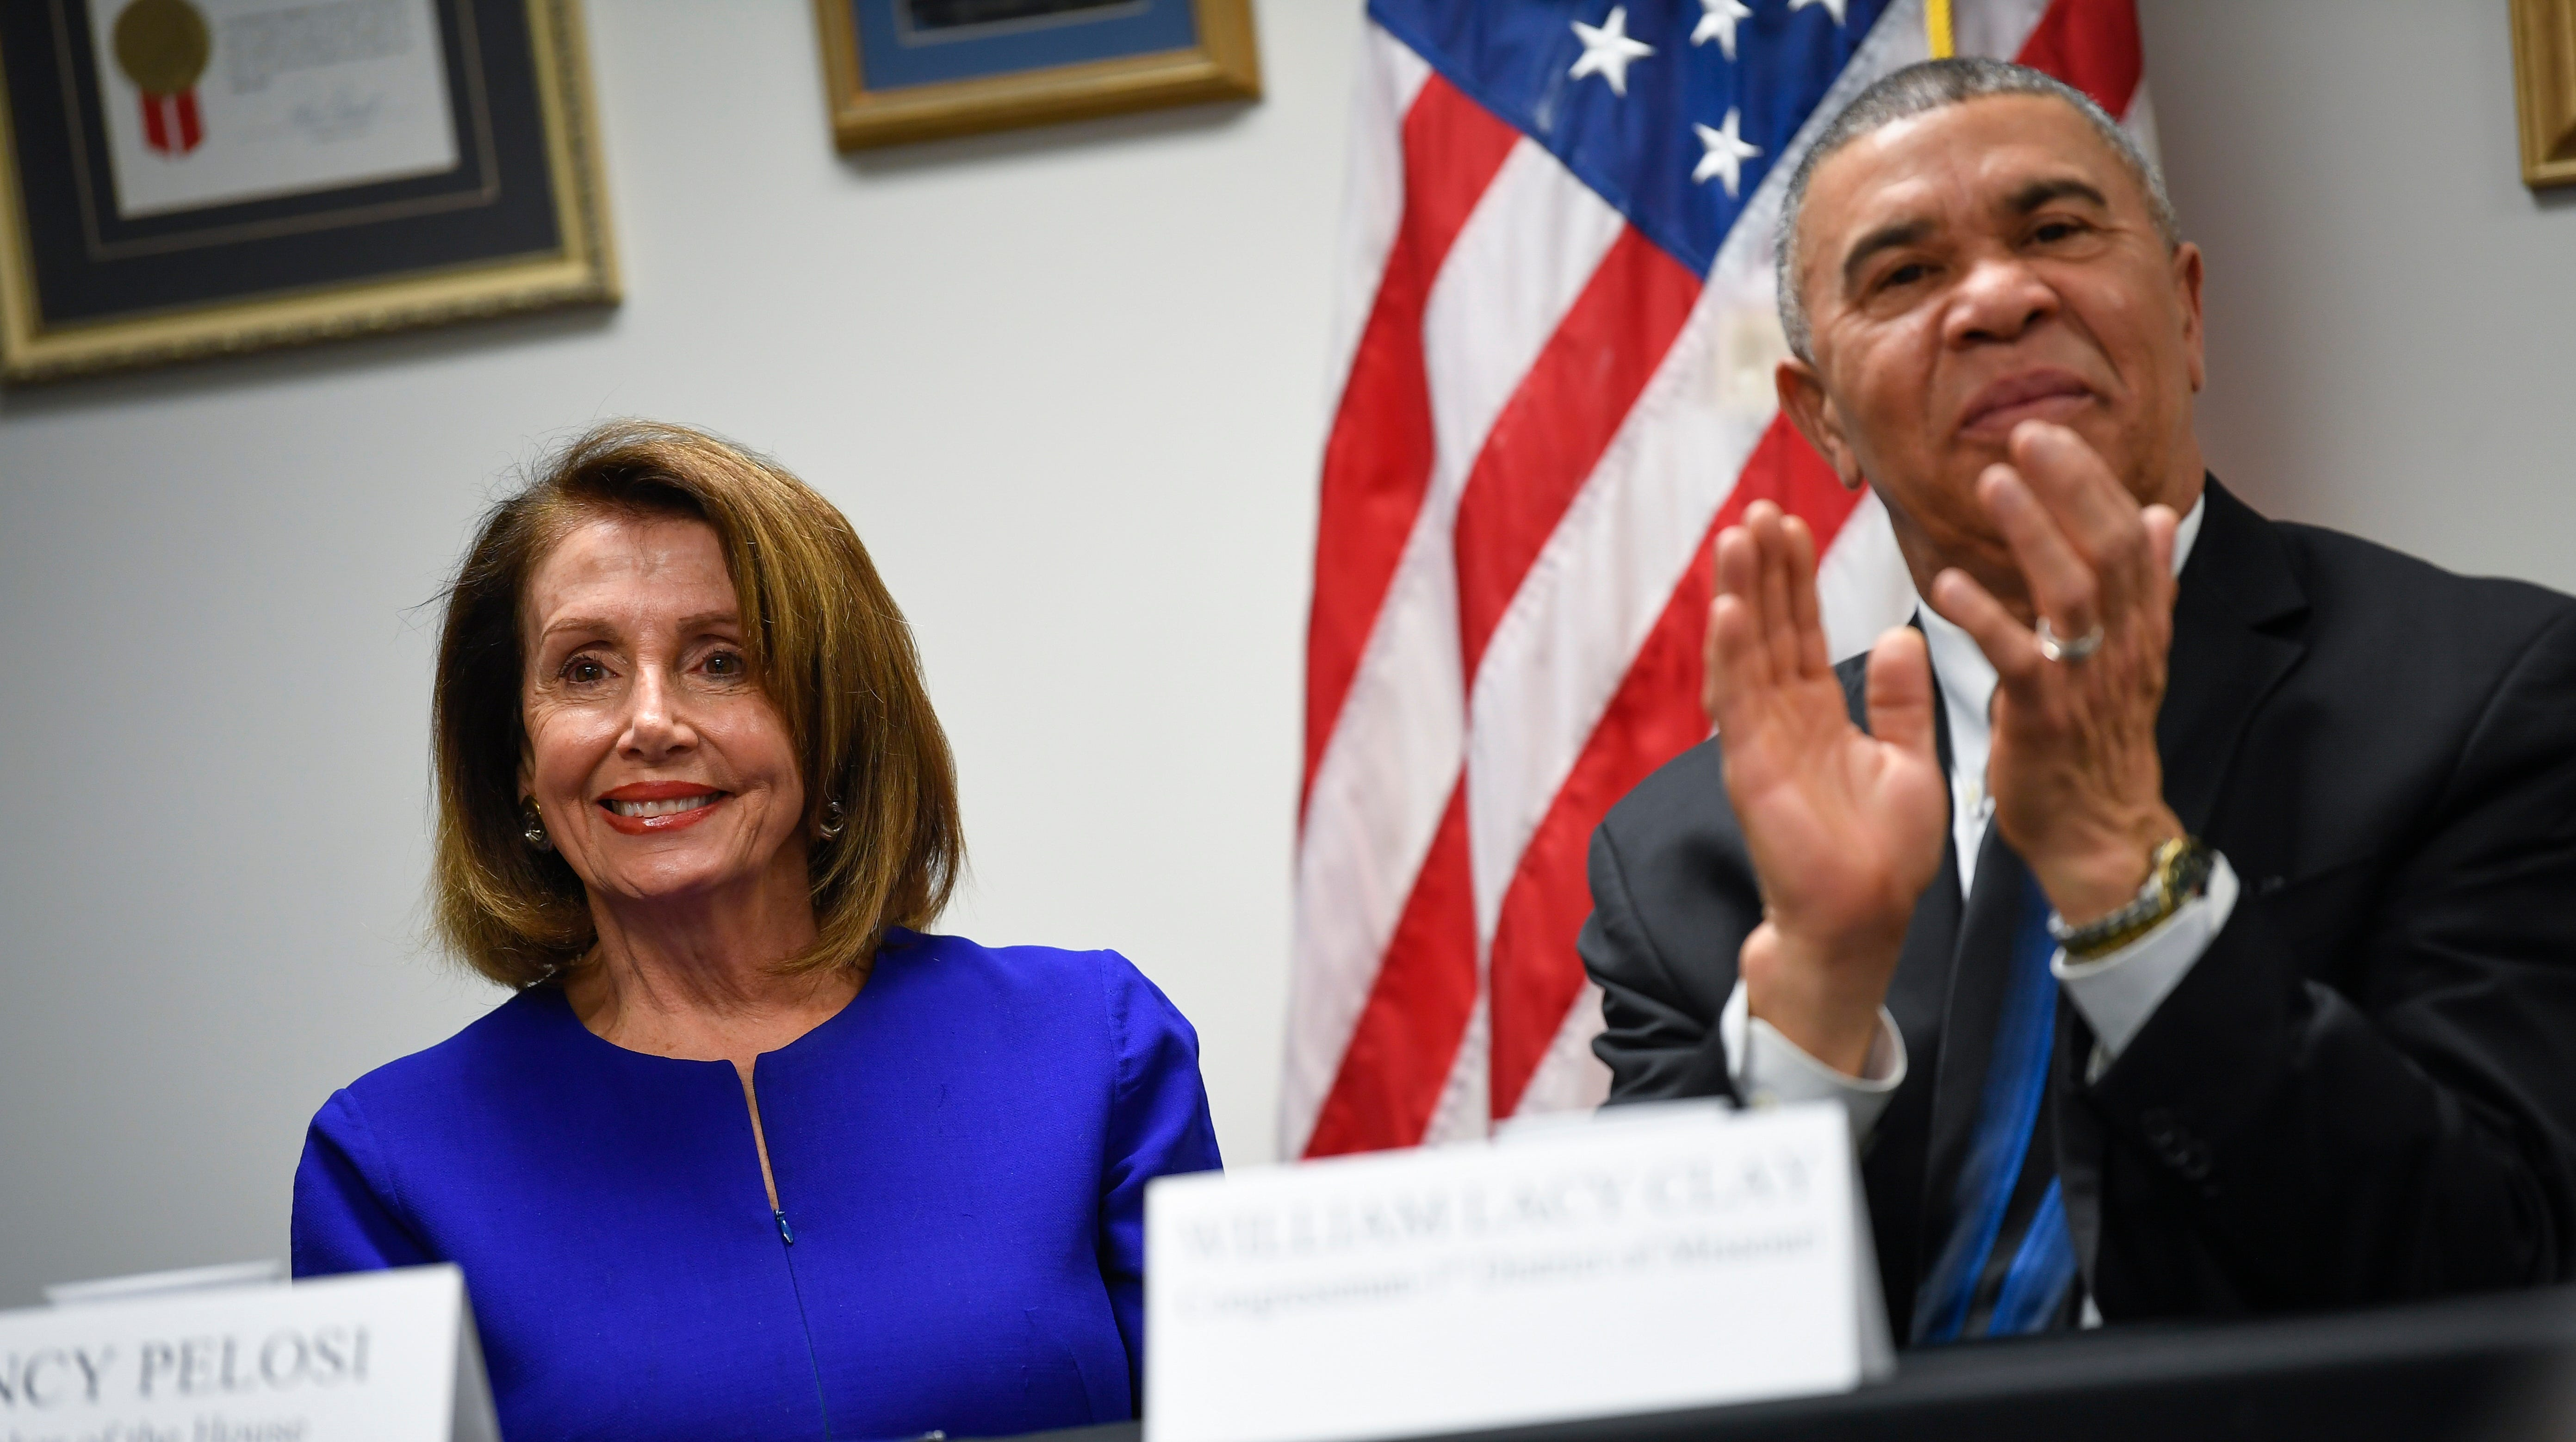 Speaker of the House Nancy Pelosi is pictured with Missouri Democratic Rep. William Lacy Clay March 18, 2019 in St. Louis, Mo. Pelosi said impeachment would be a gift to President Donald Trump, unless they could get GOP support.